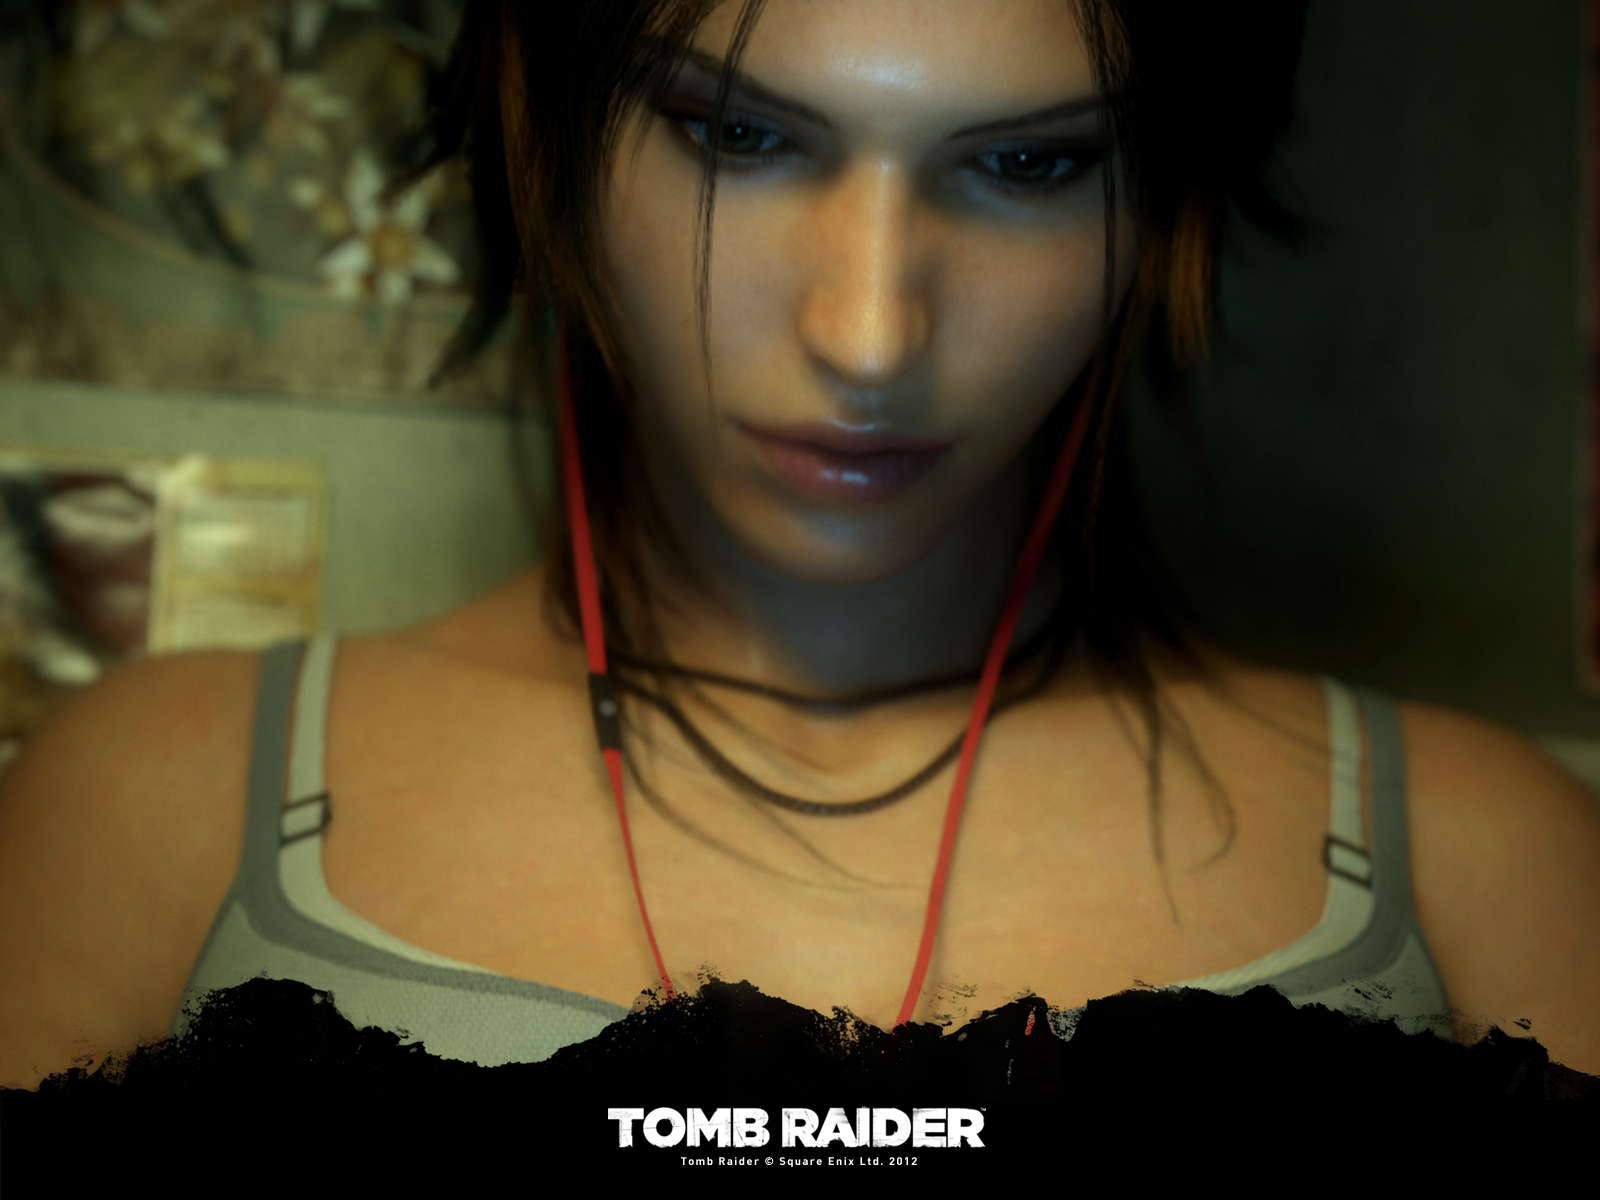 http://4.bp.blogspot.com/-YWhSBV4KyMo/UAzCQwDyjGI/AAAAAAAAB30/zgdW1HKhLnM/s1600/tomb+raider+2013+wallpaper+background+2012+reboot+new+lara+croft+crystal+dynamics+square+enix.jpg